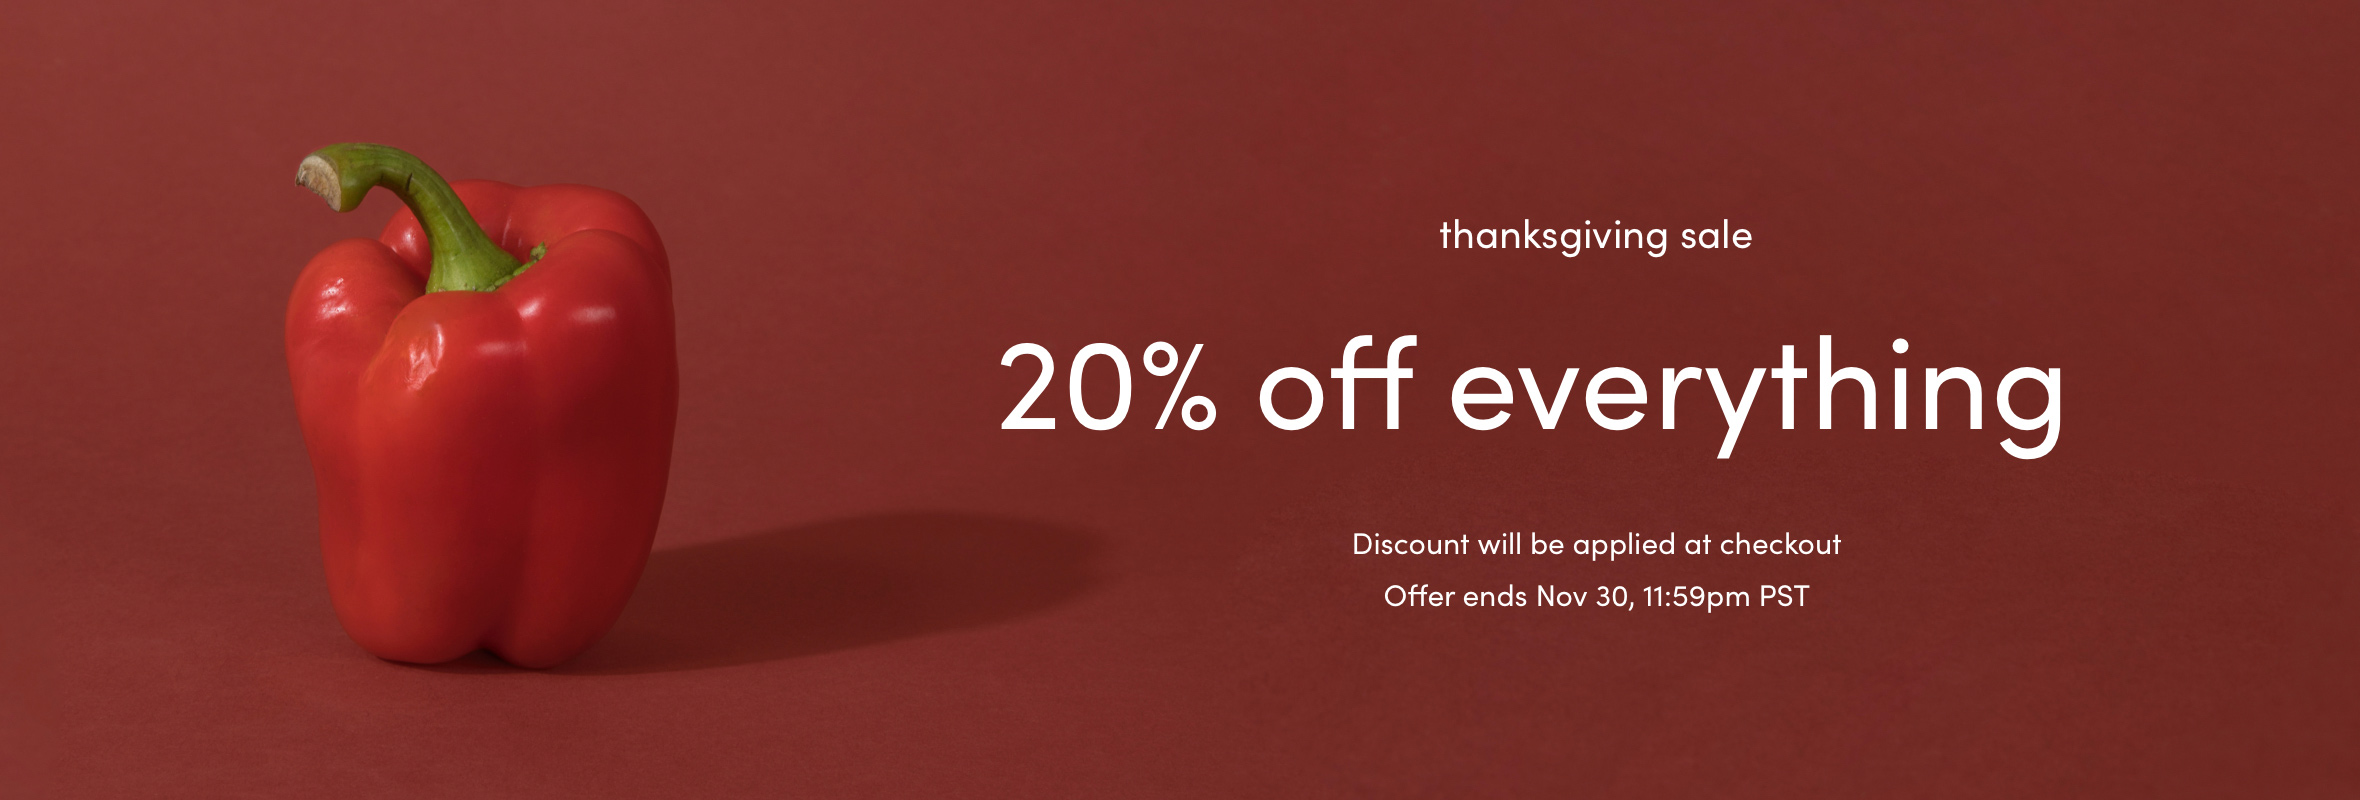 Thanksgiving sale - 20% off everything